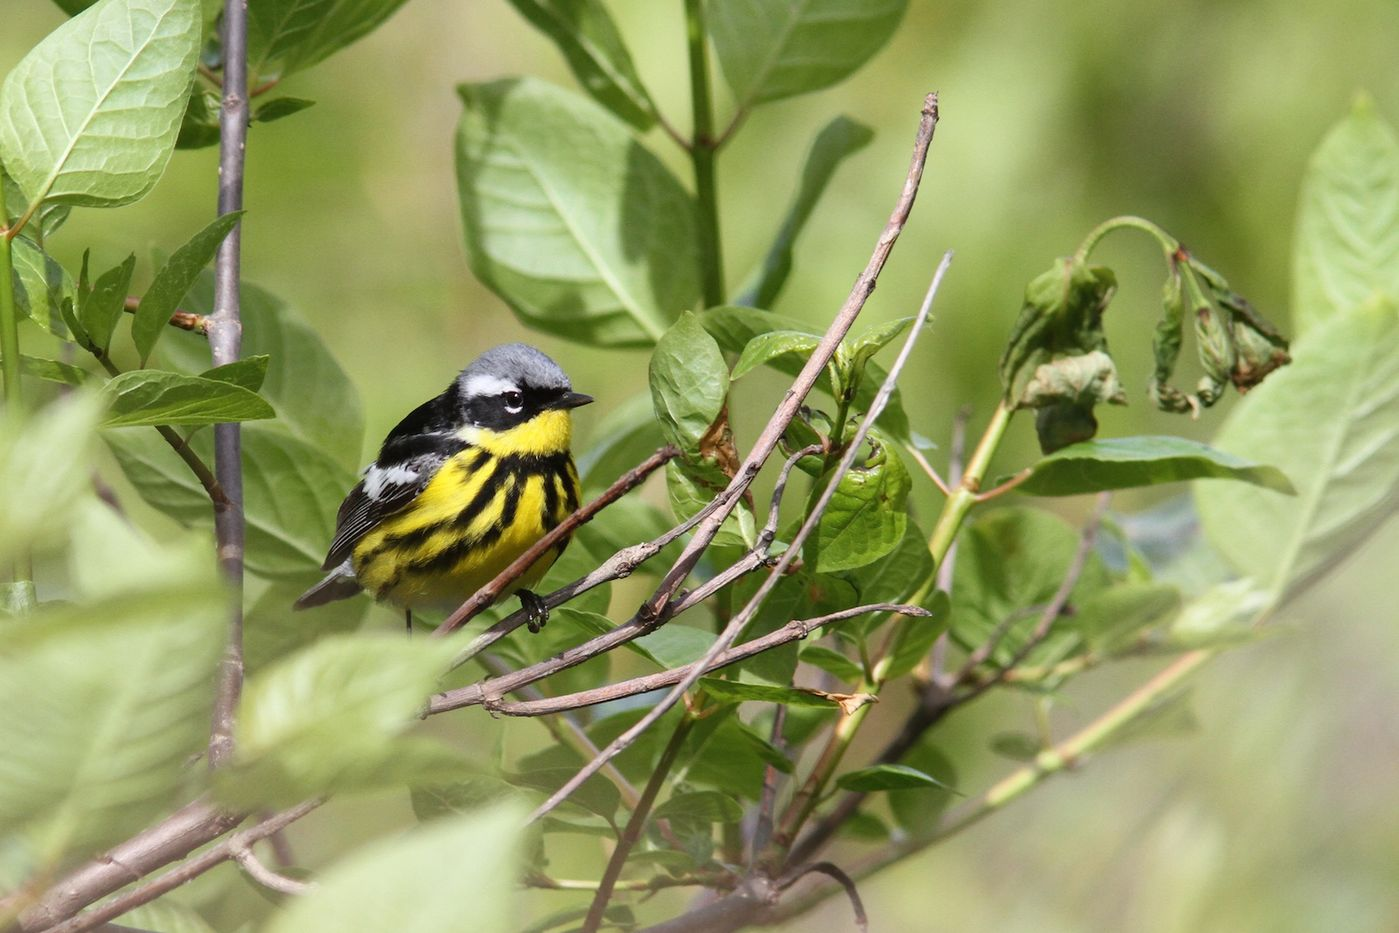 Using eBird to keep up with recent sightings in your area | Field Museum